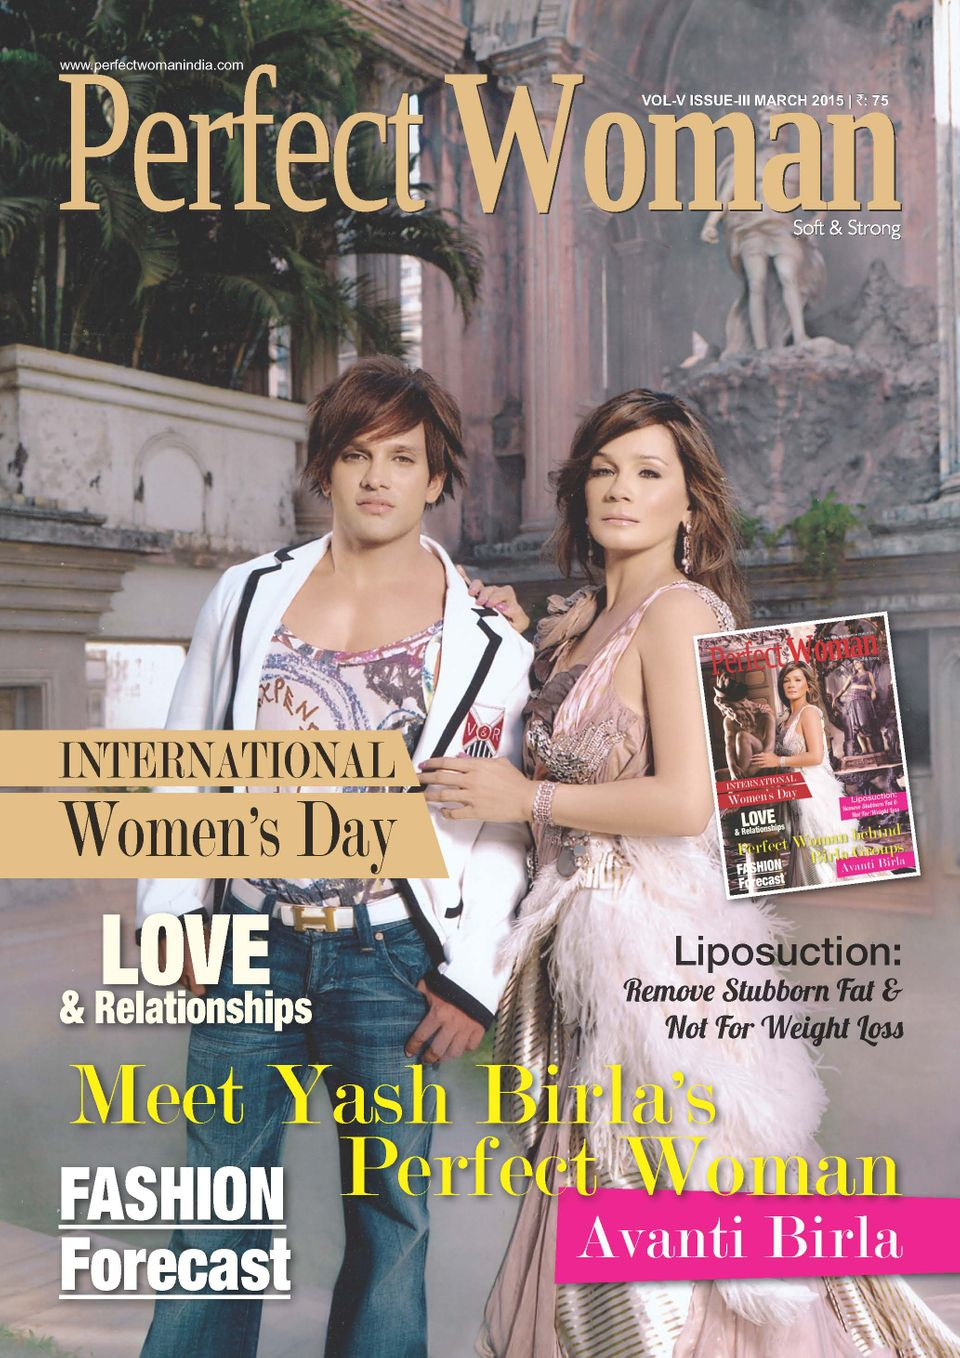 Perfect Woman-March 2015 Magazine - Get your Digital